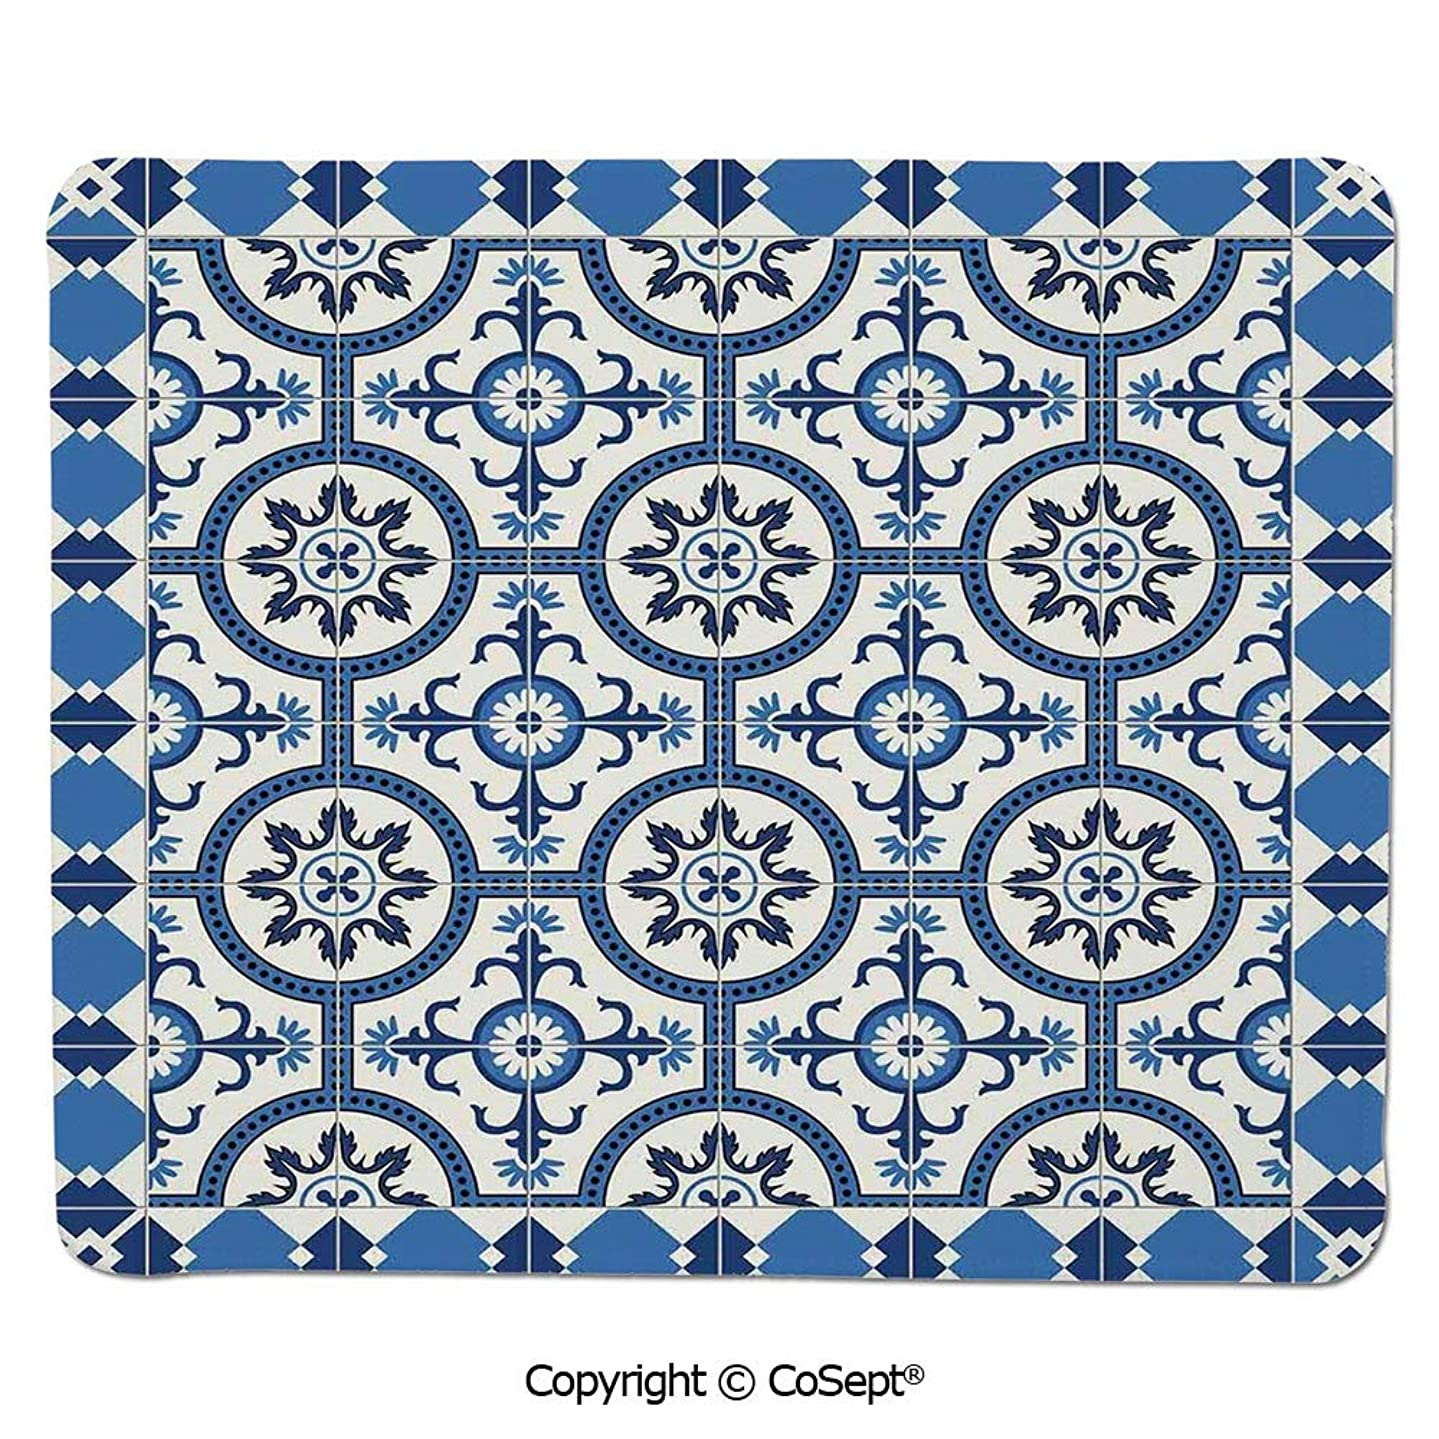 Non-Slip Rubber Base Mousepad,Oriental Turkish Style Inspired Arabesque Mosaic Motifs in Classic Retro Design,for Computer,Laptop,Home,Office & Travel(7.87